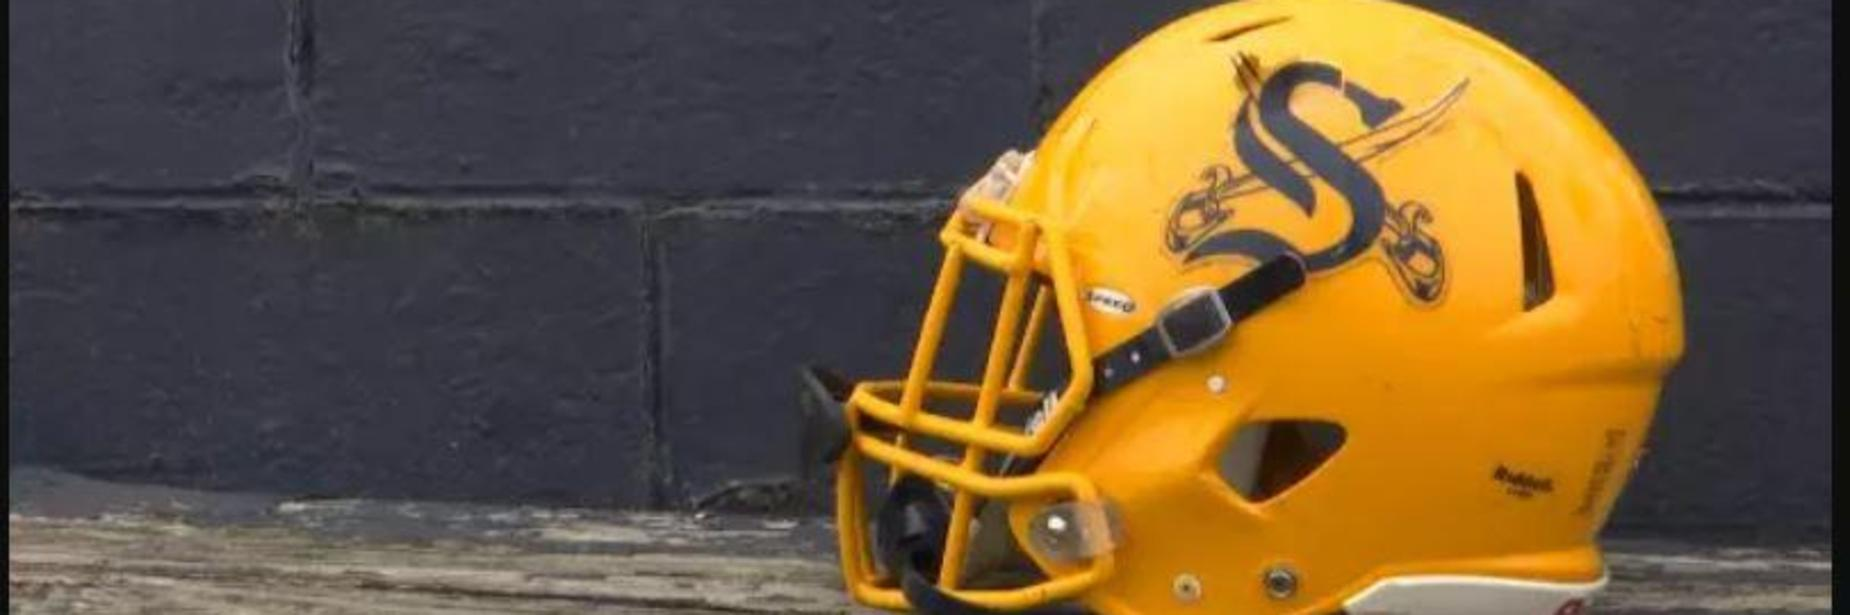 SHS Football Helmet